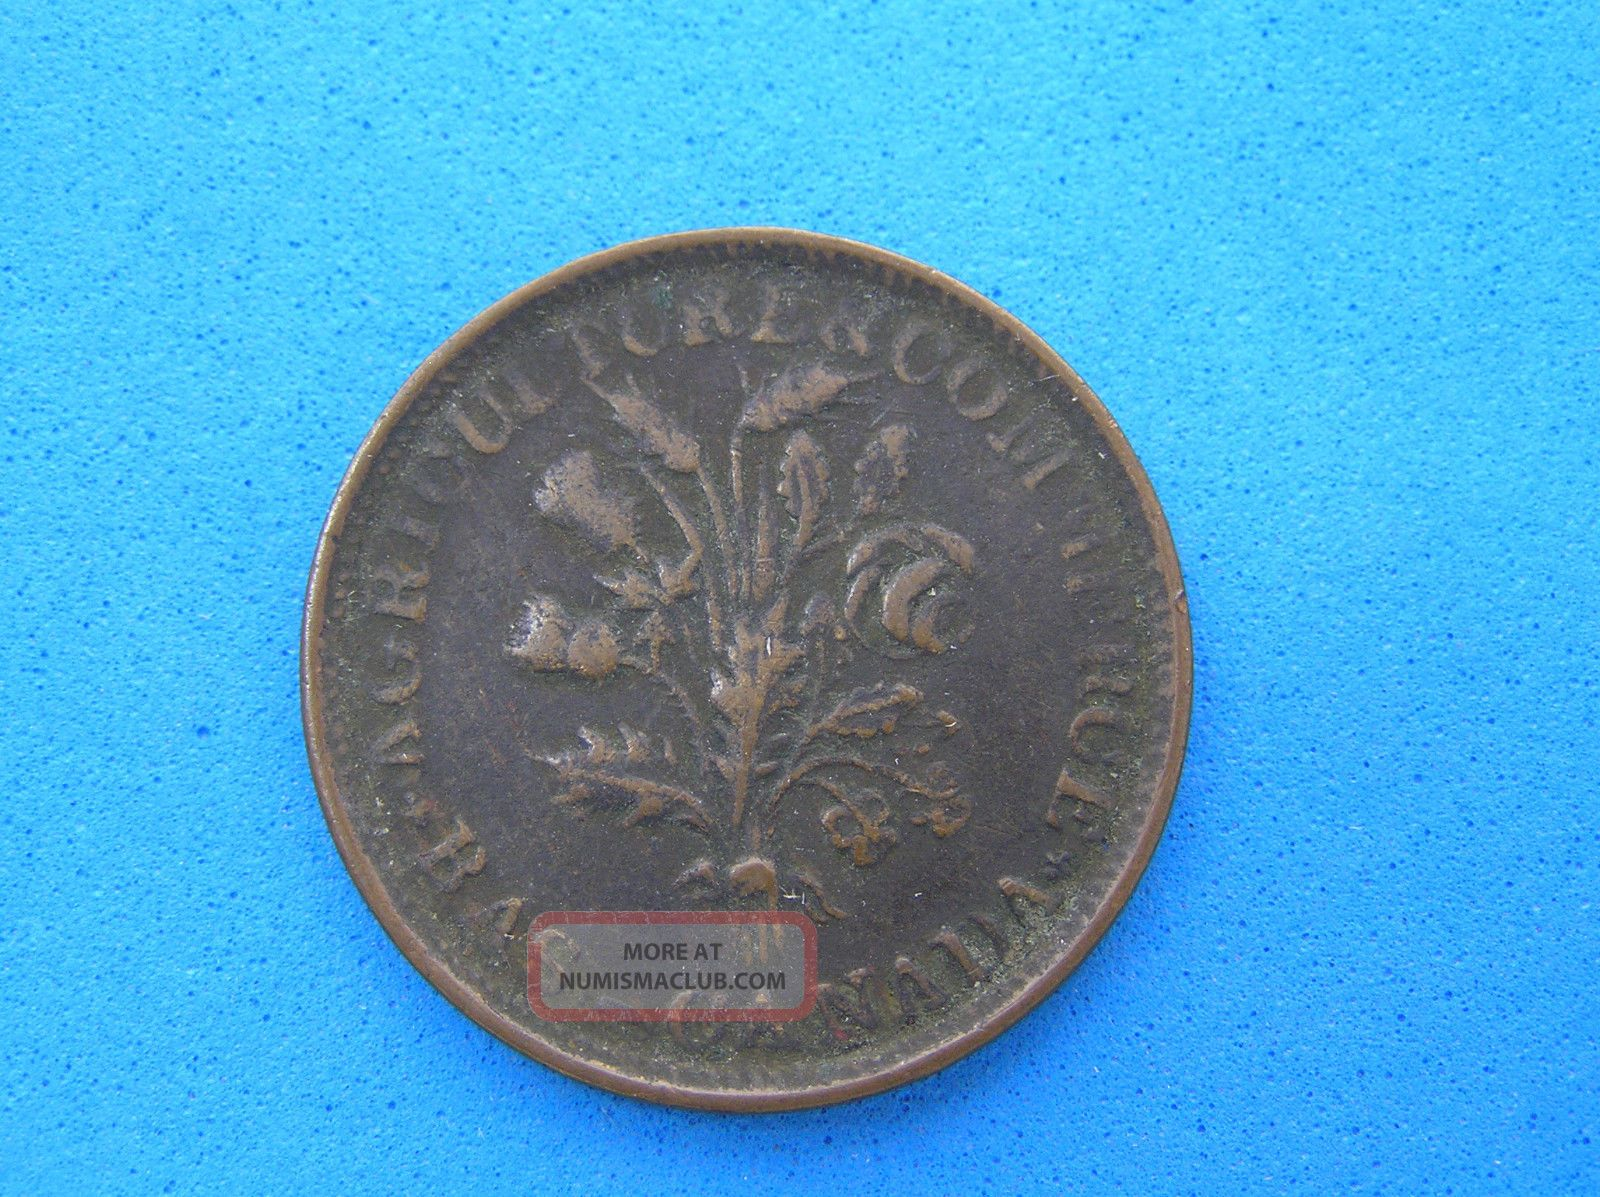 Bouquet Un Sou Token Of Lower Canada,  2 Shamrocks,  20 Leaves,  Br 704,  Lc - 33a1 Coins: Canada photo